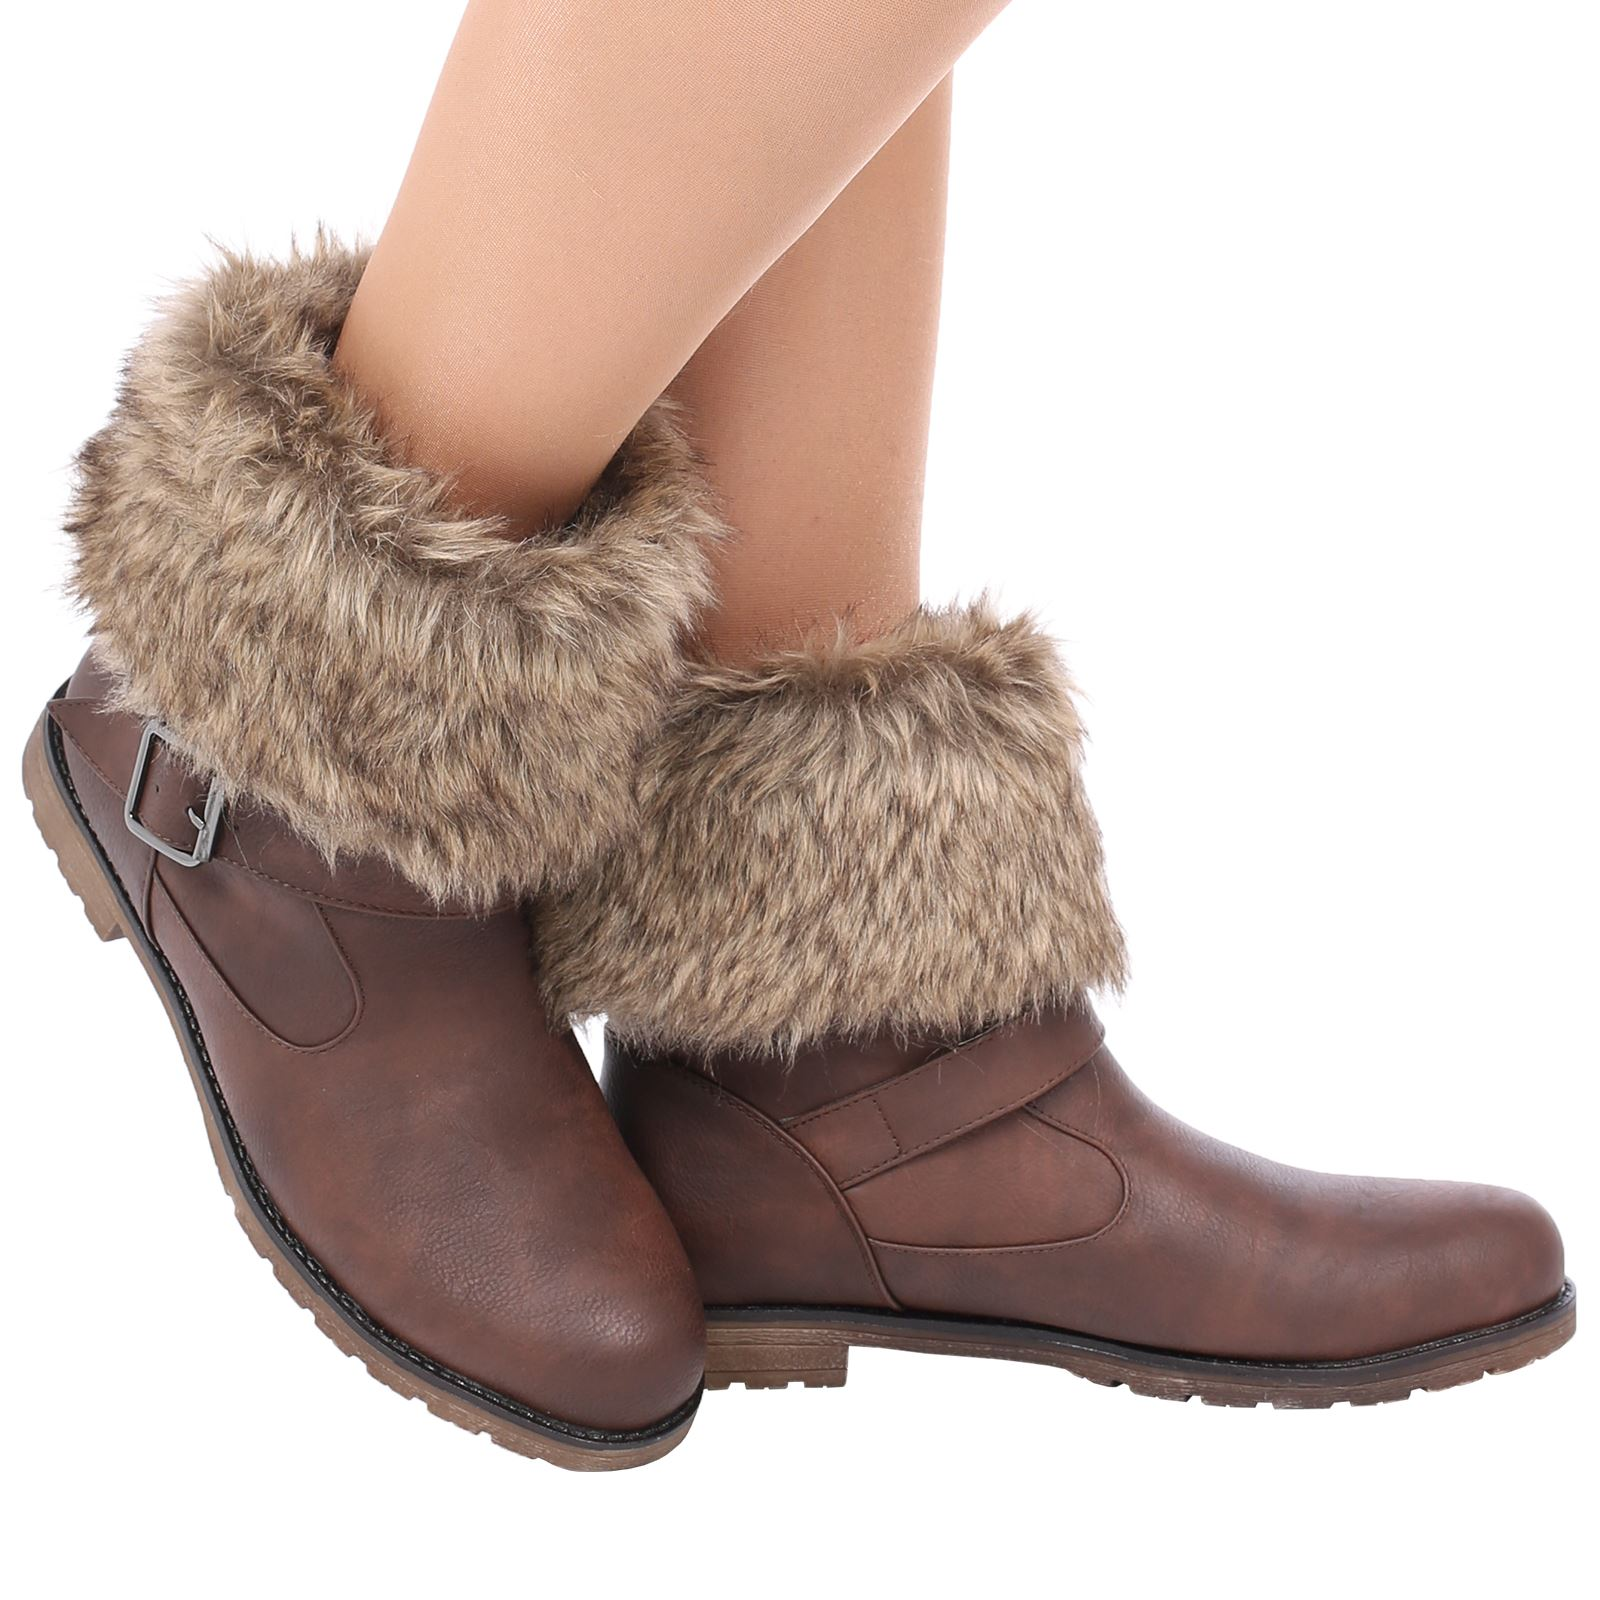 Shop womens fur boots cheap sale online, you can buy winter faux fur boots, fur lined boots, black fur boots, ankle snow boots for women at wholesale prices on magyc.cf FREE Shipping available worldwide.